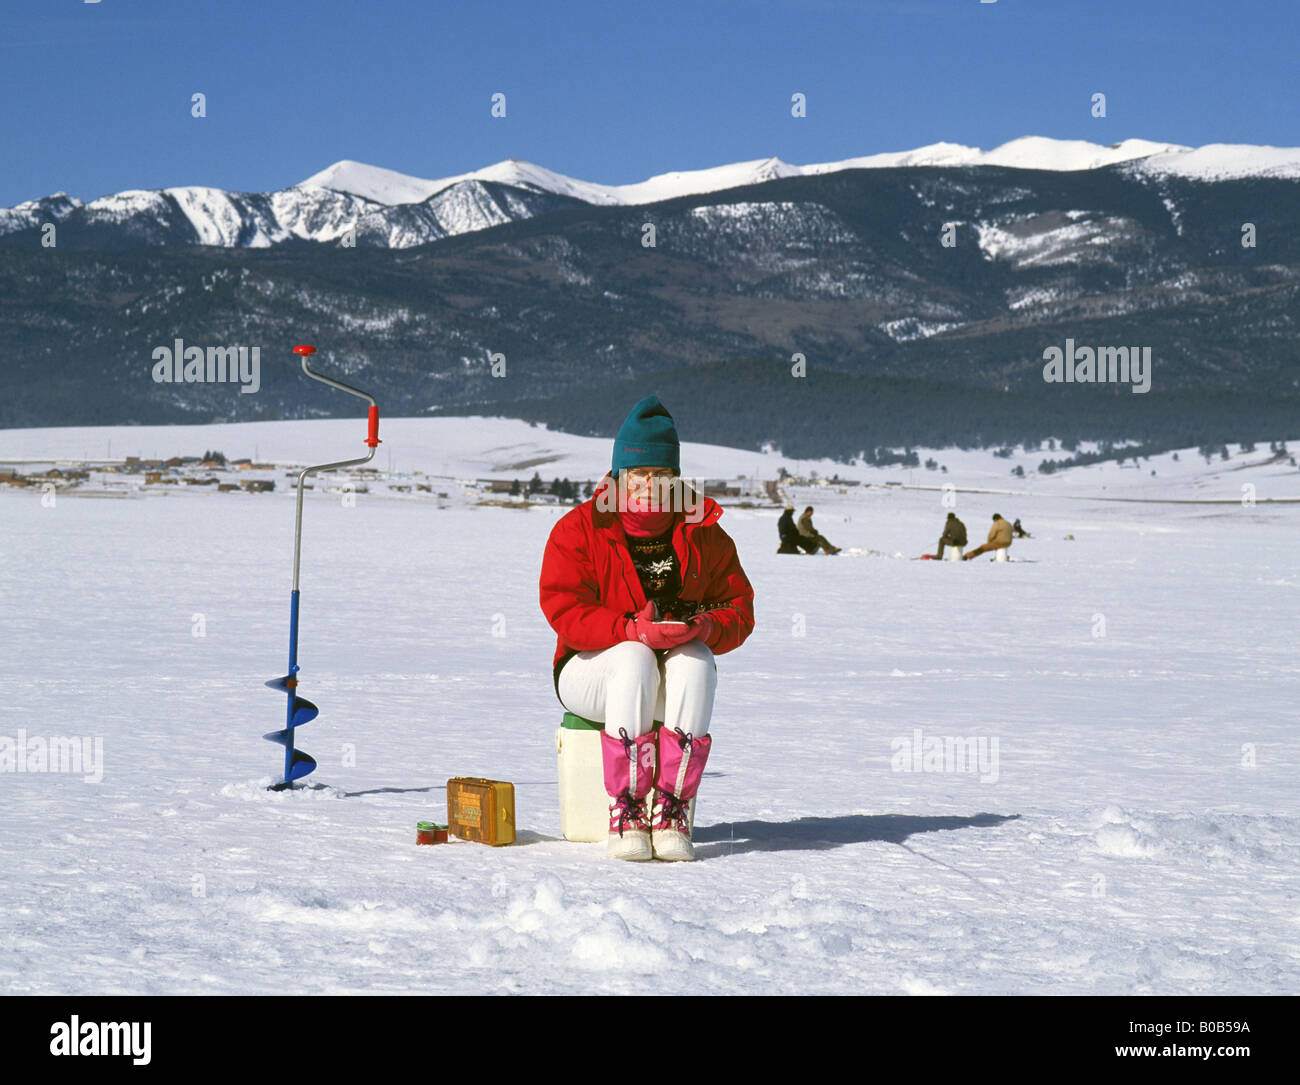 A woman with an ice auger ice fishing on Eagle Nest Lake in the